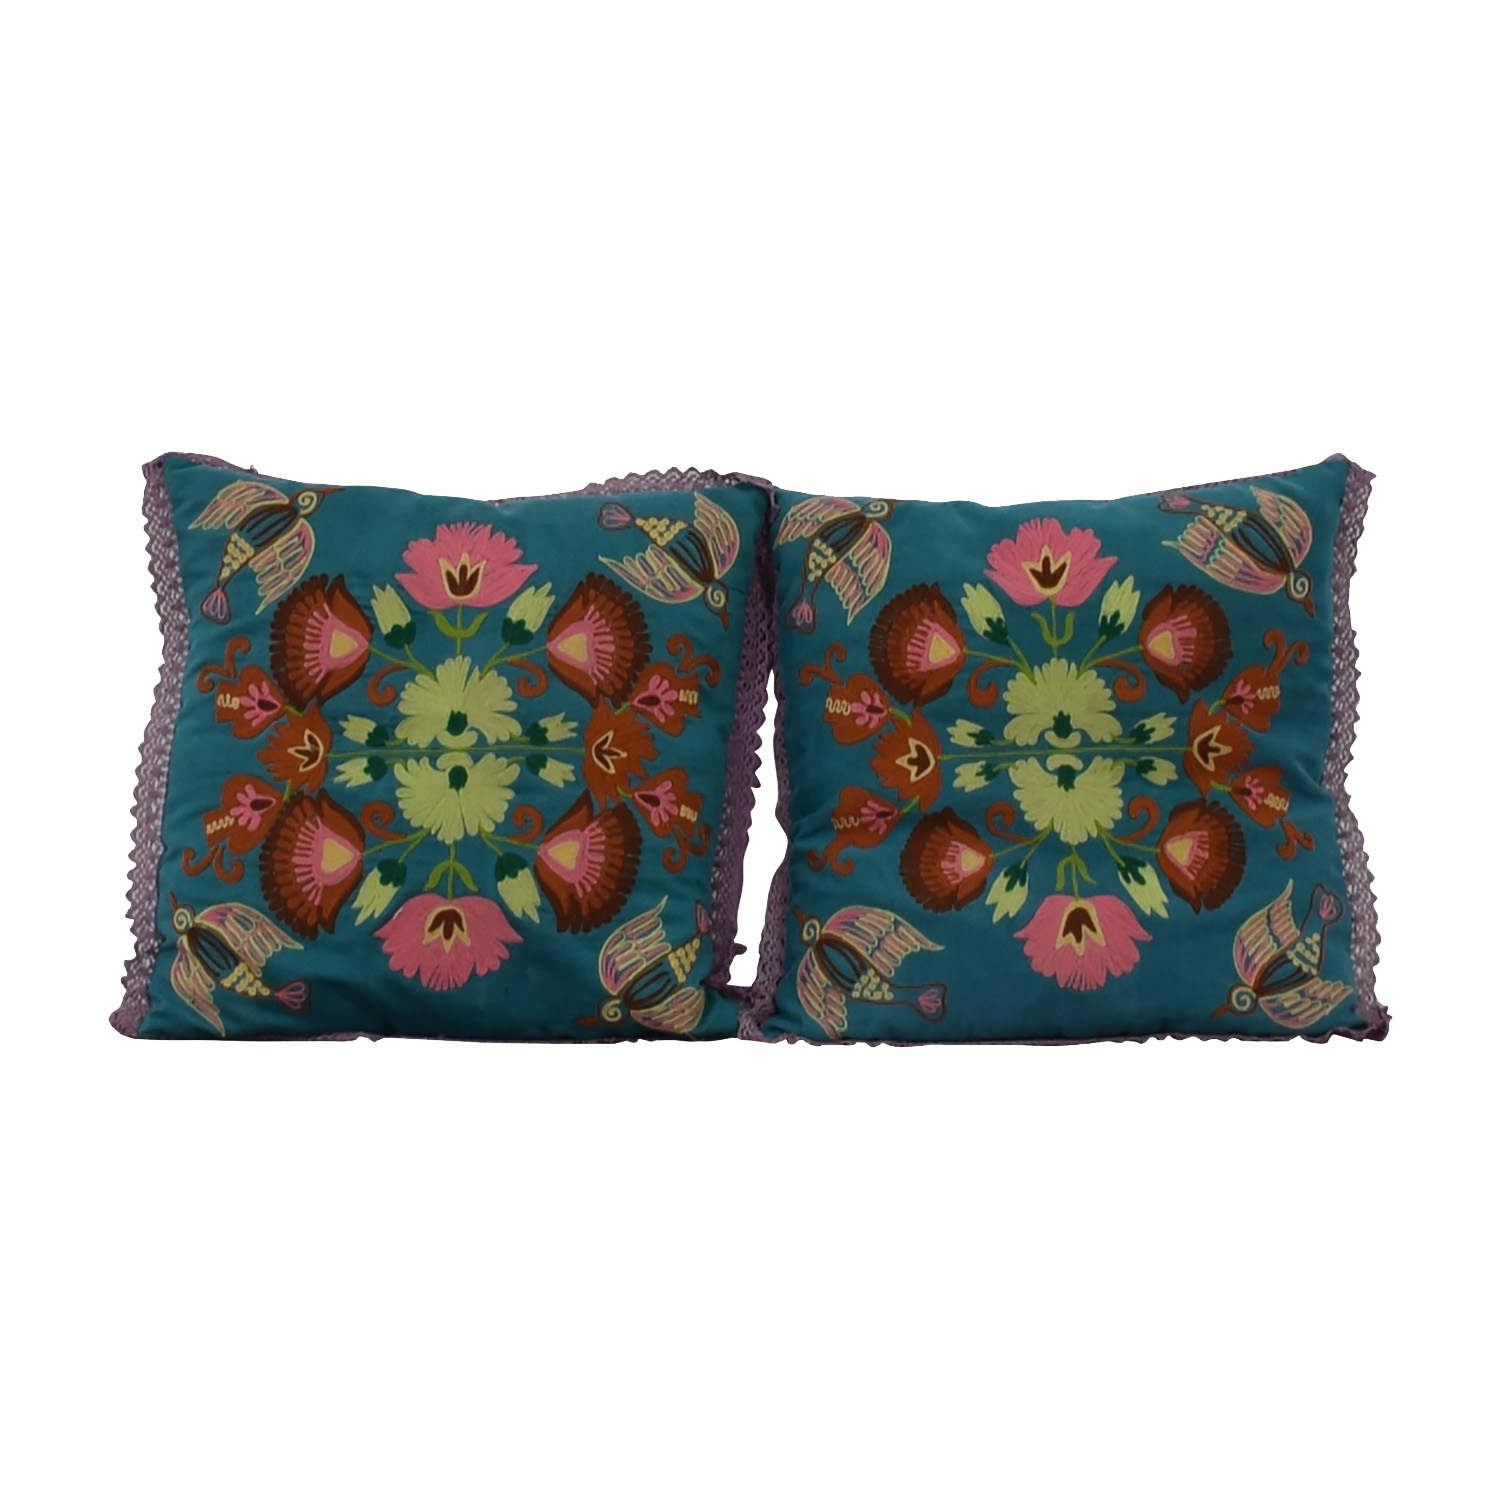 buy Wayfair Multi-Colored Toss Pillows Wayfair Decorative Accents